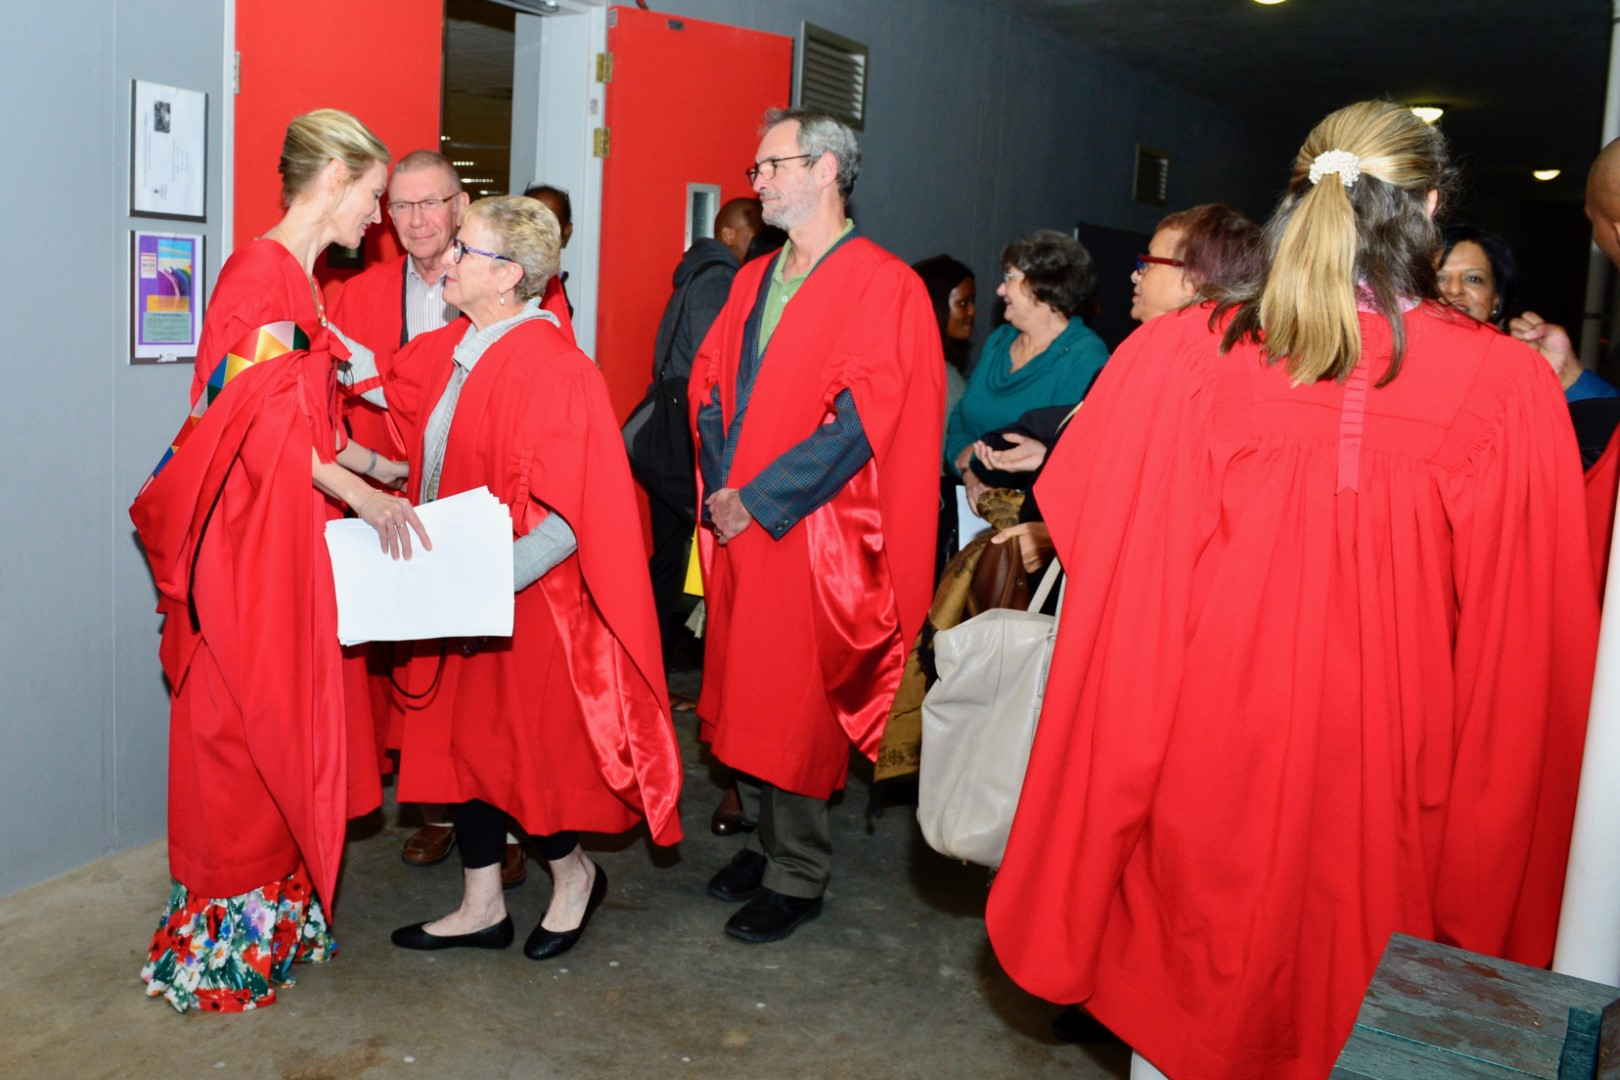 UKZN academics congratulate Prof Pithouse Morgan on entering the professoriate